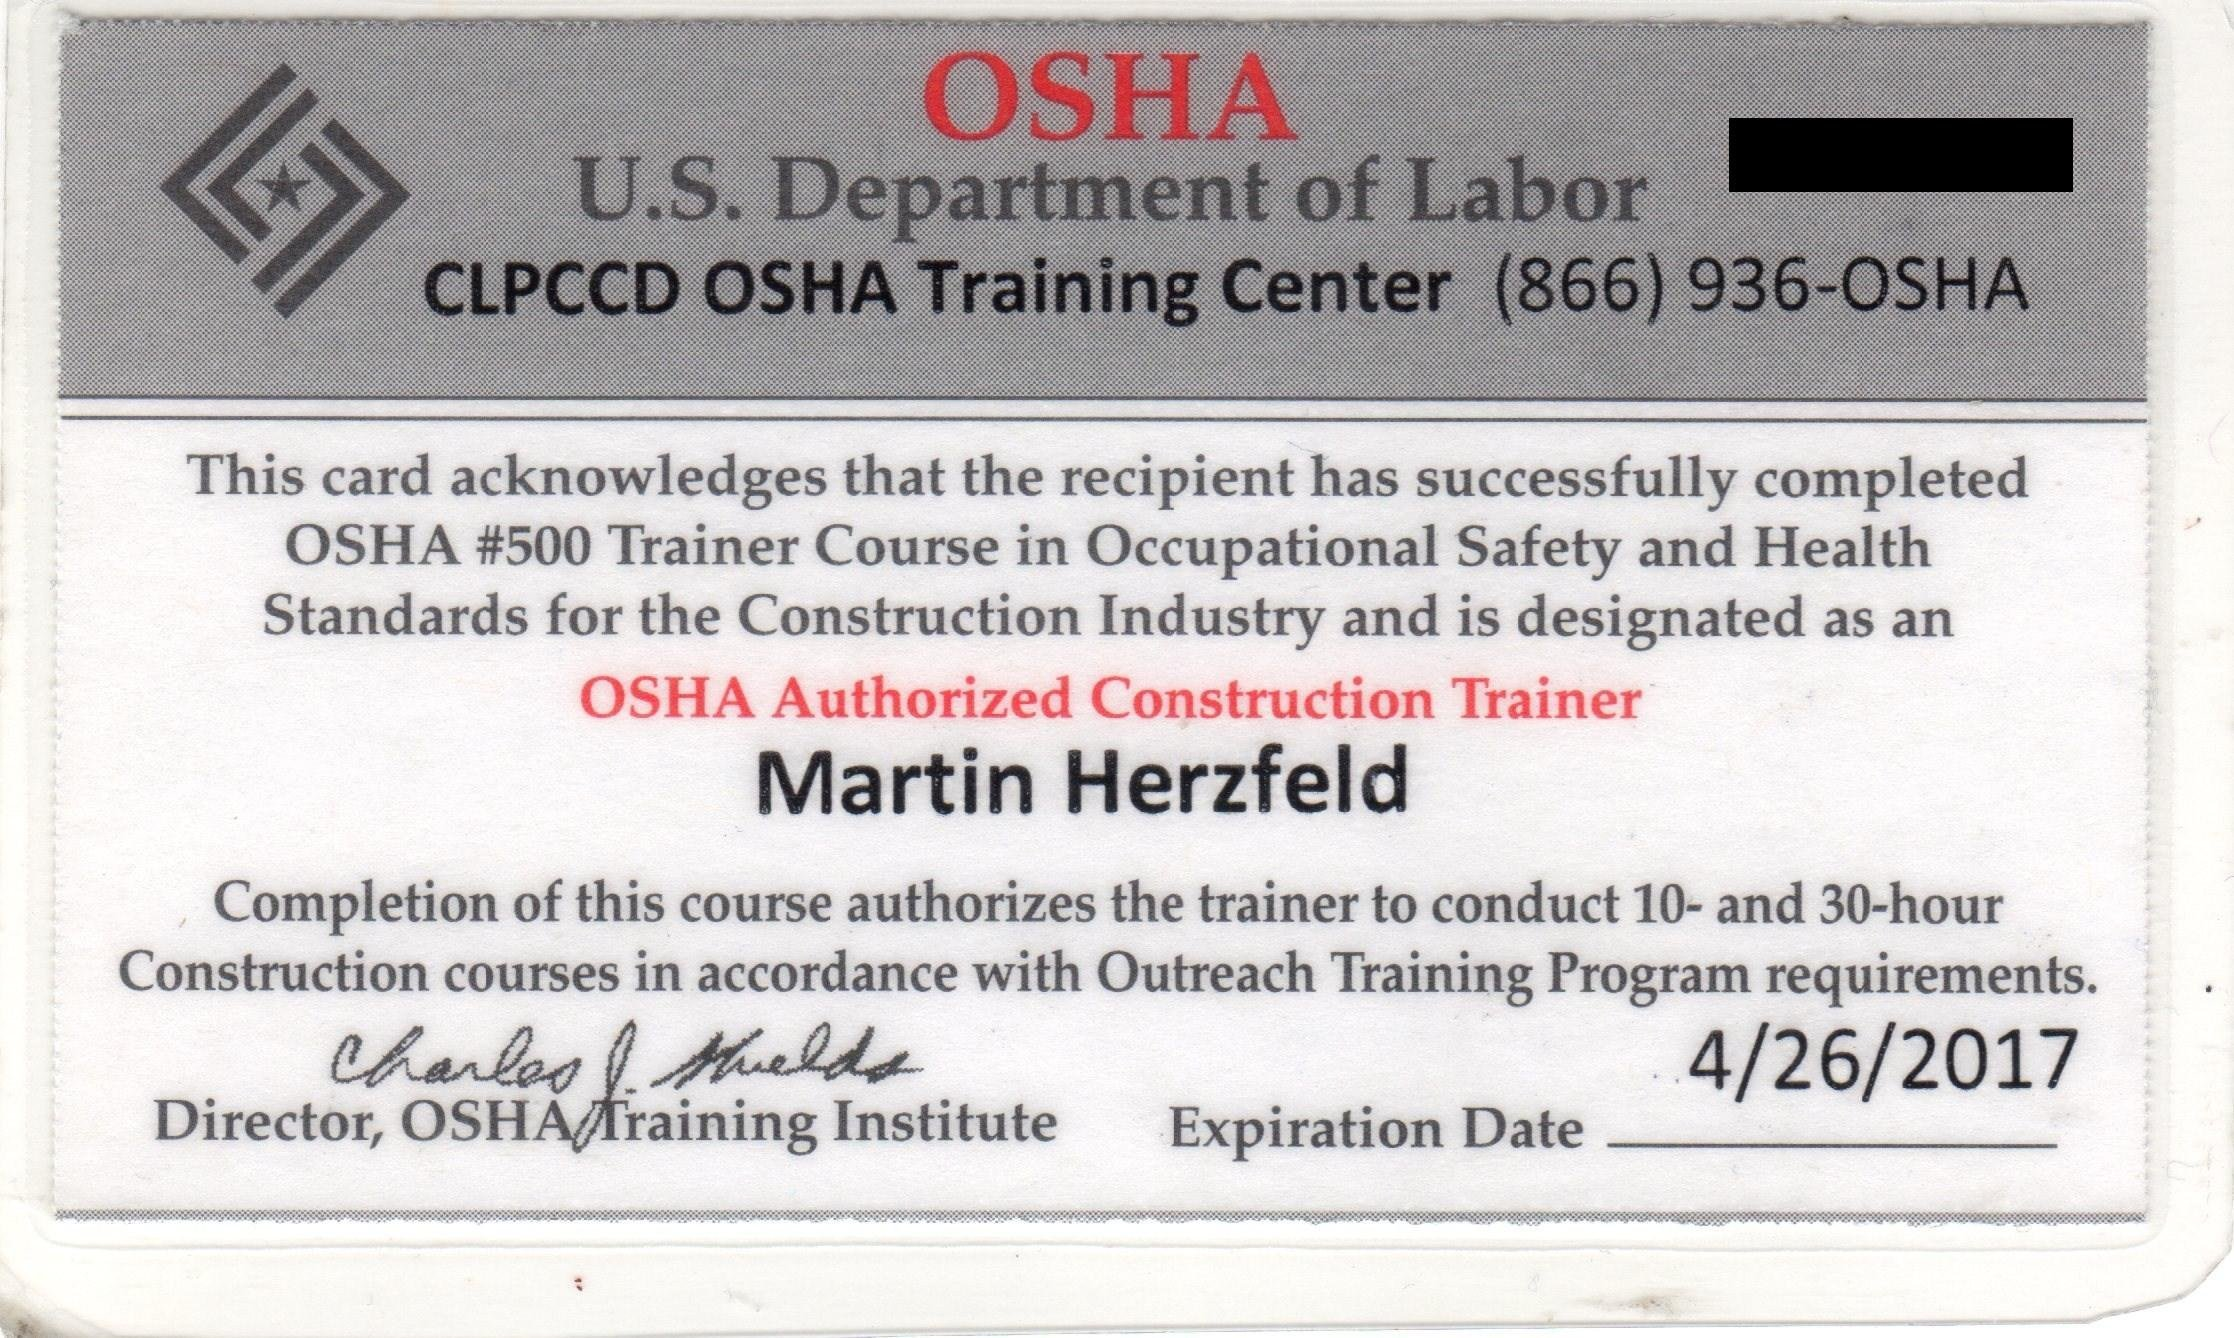 Osha 10 Card Template Licensed solar Contractor & Project Consultant Licensed